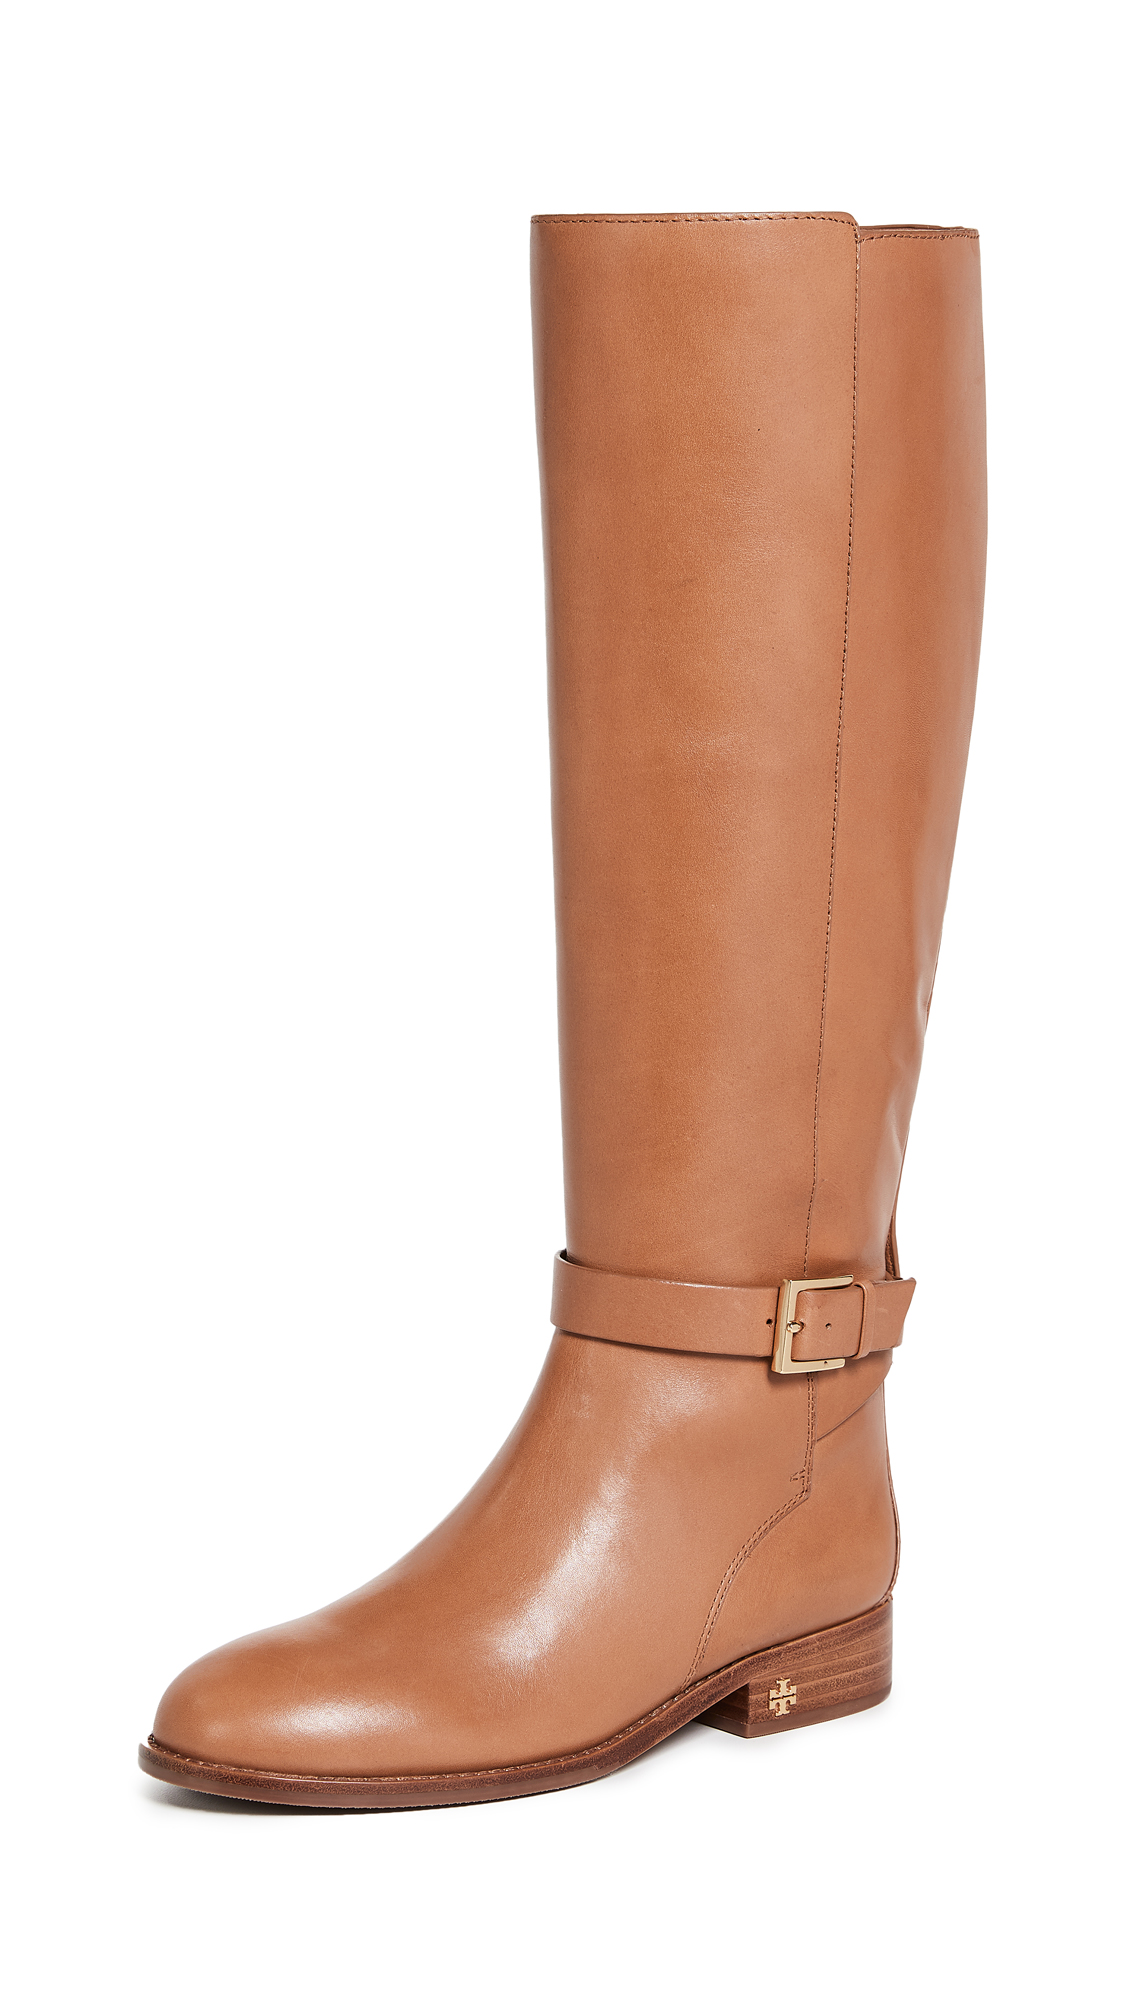 Tory Burch Brooke Tall Boots - Tan